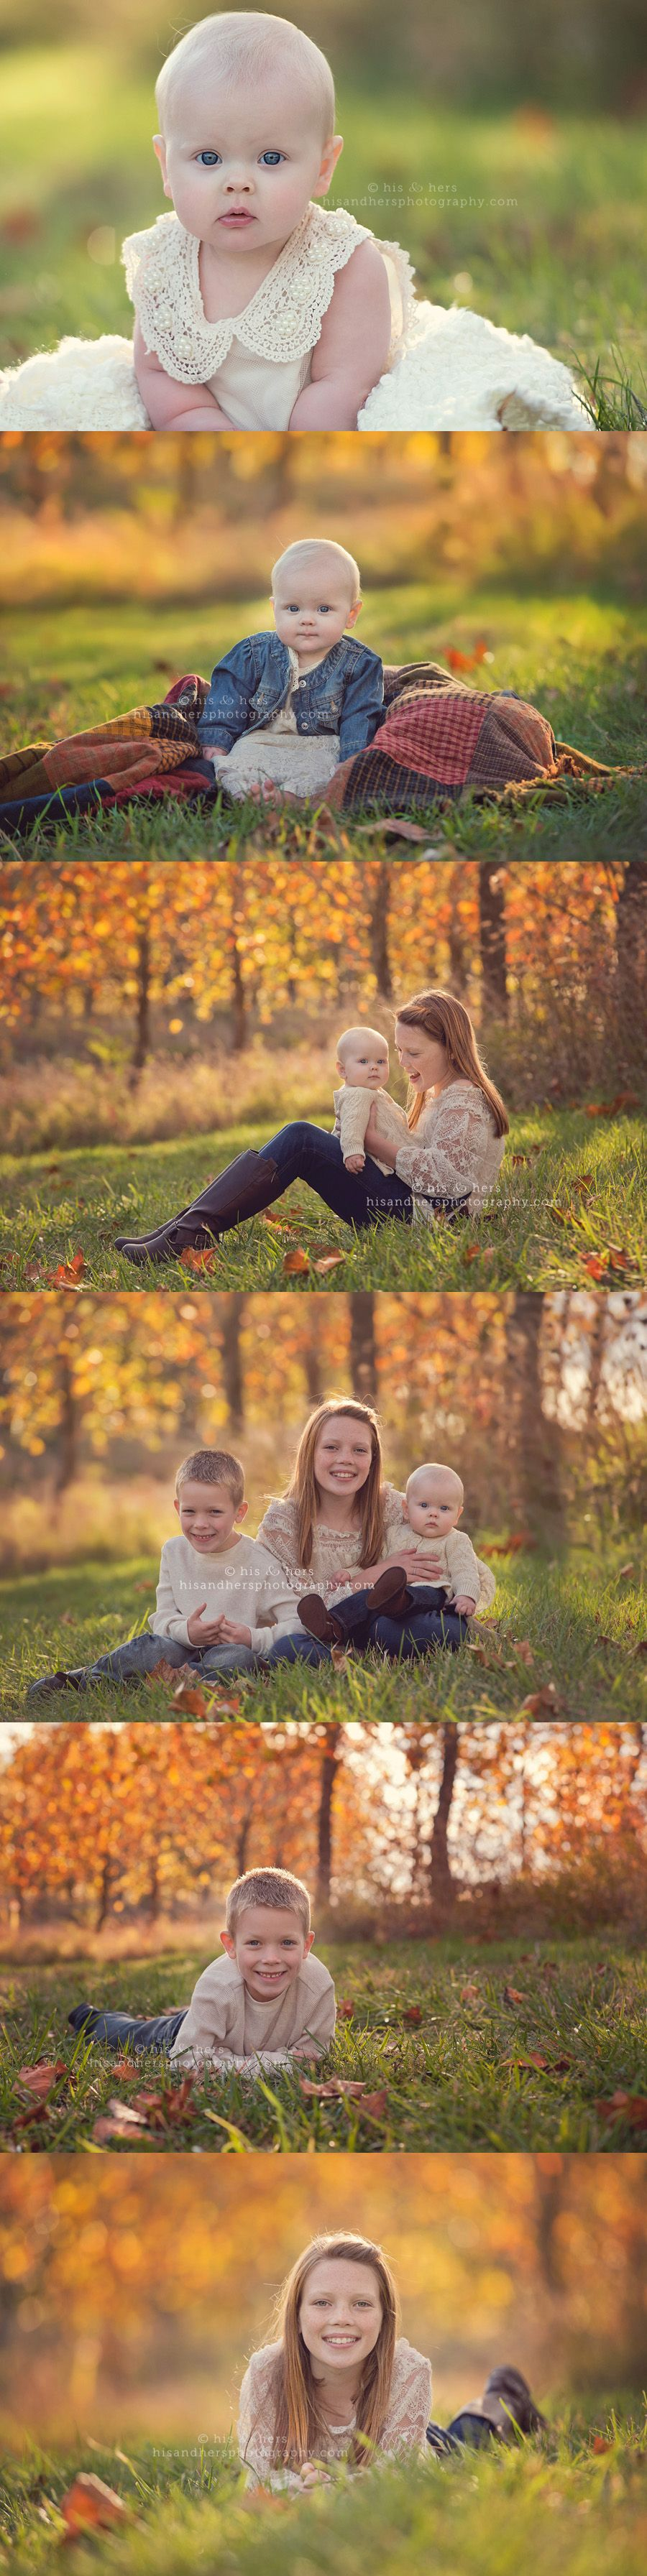 iowa child photographer baby photographer sisters siblings brother and sister photographer des moines